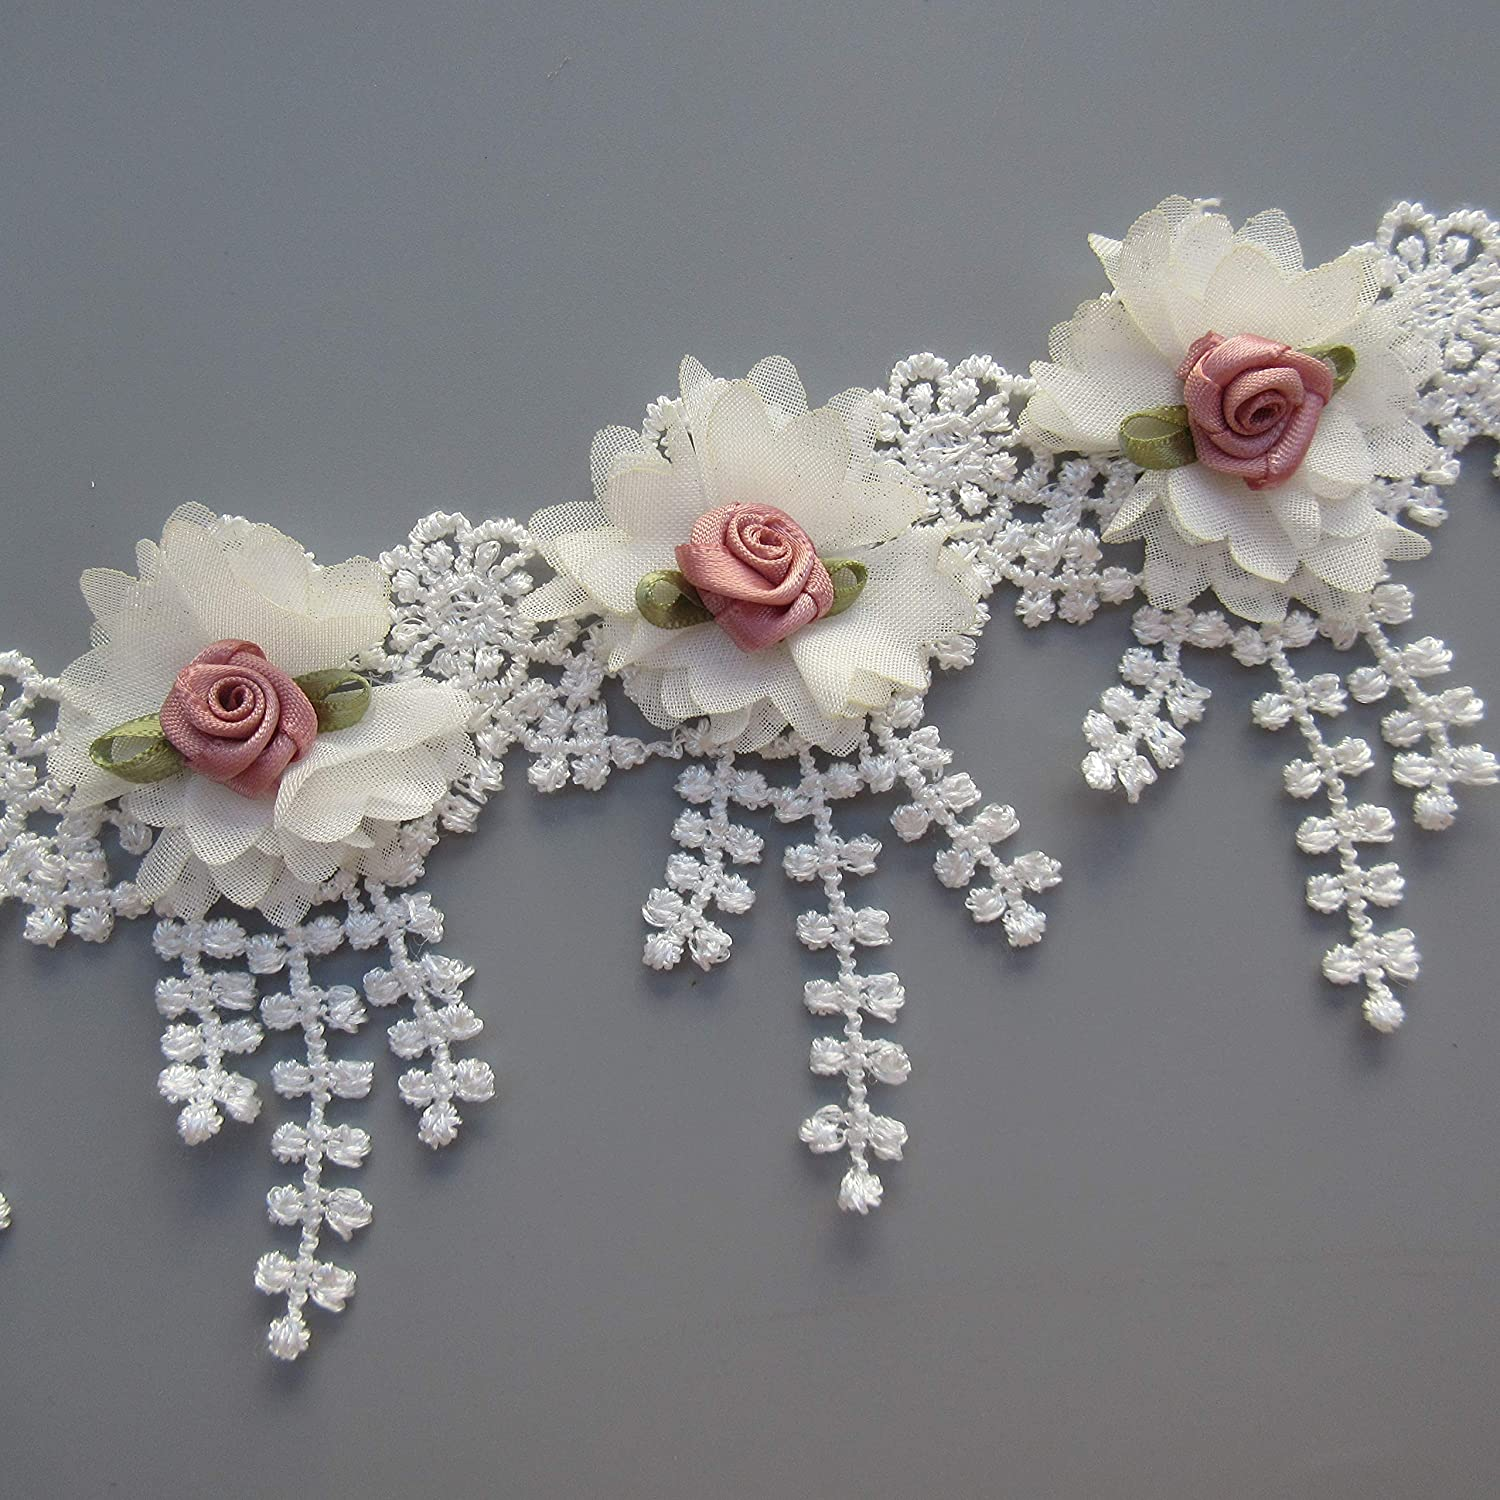 Pink 30pcs Flower Lace Ribbon Tassel Edge Trim with Pearl Beads 3D Floral 3-1//3 inches Wide Vintage White Pink Edging Trimmings Guipure Fabric Embroidered for Sewing Crafts Clothes Dresses Applique